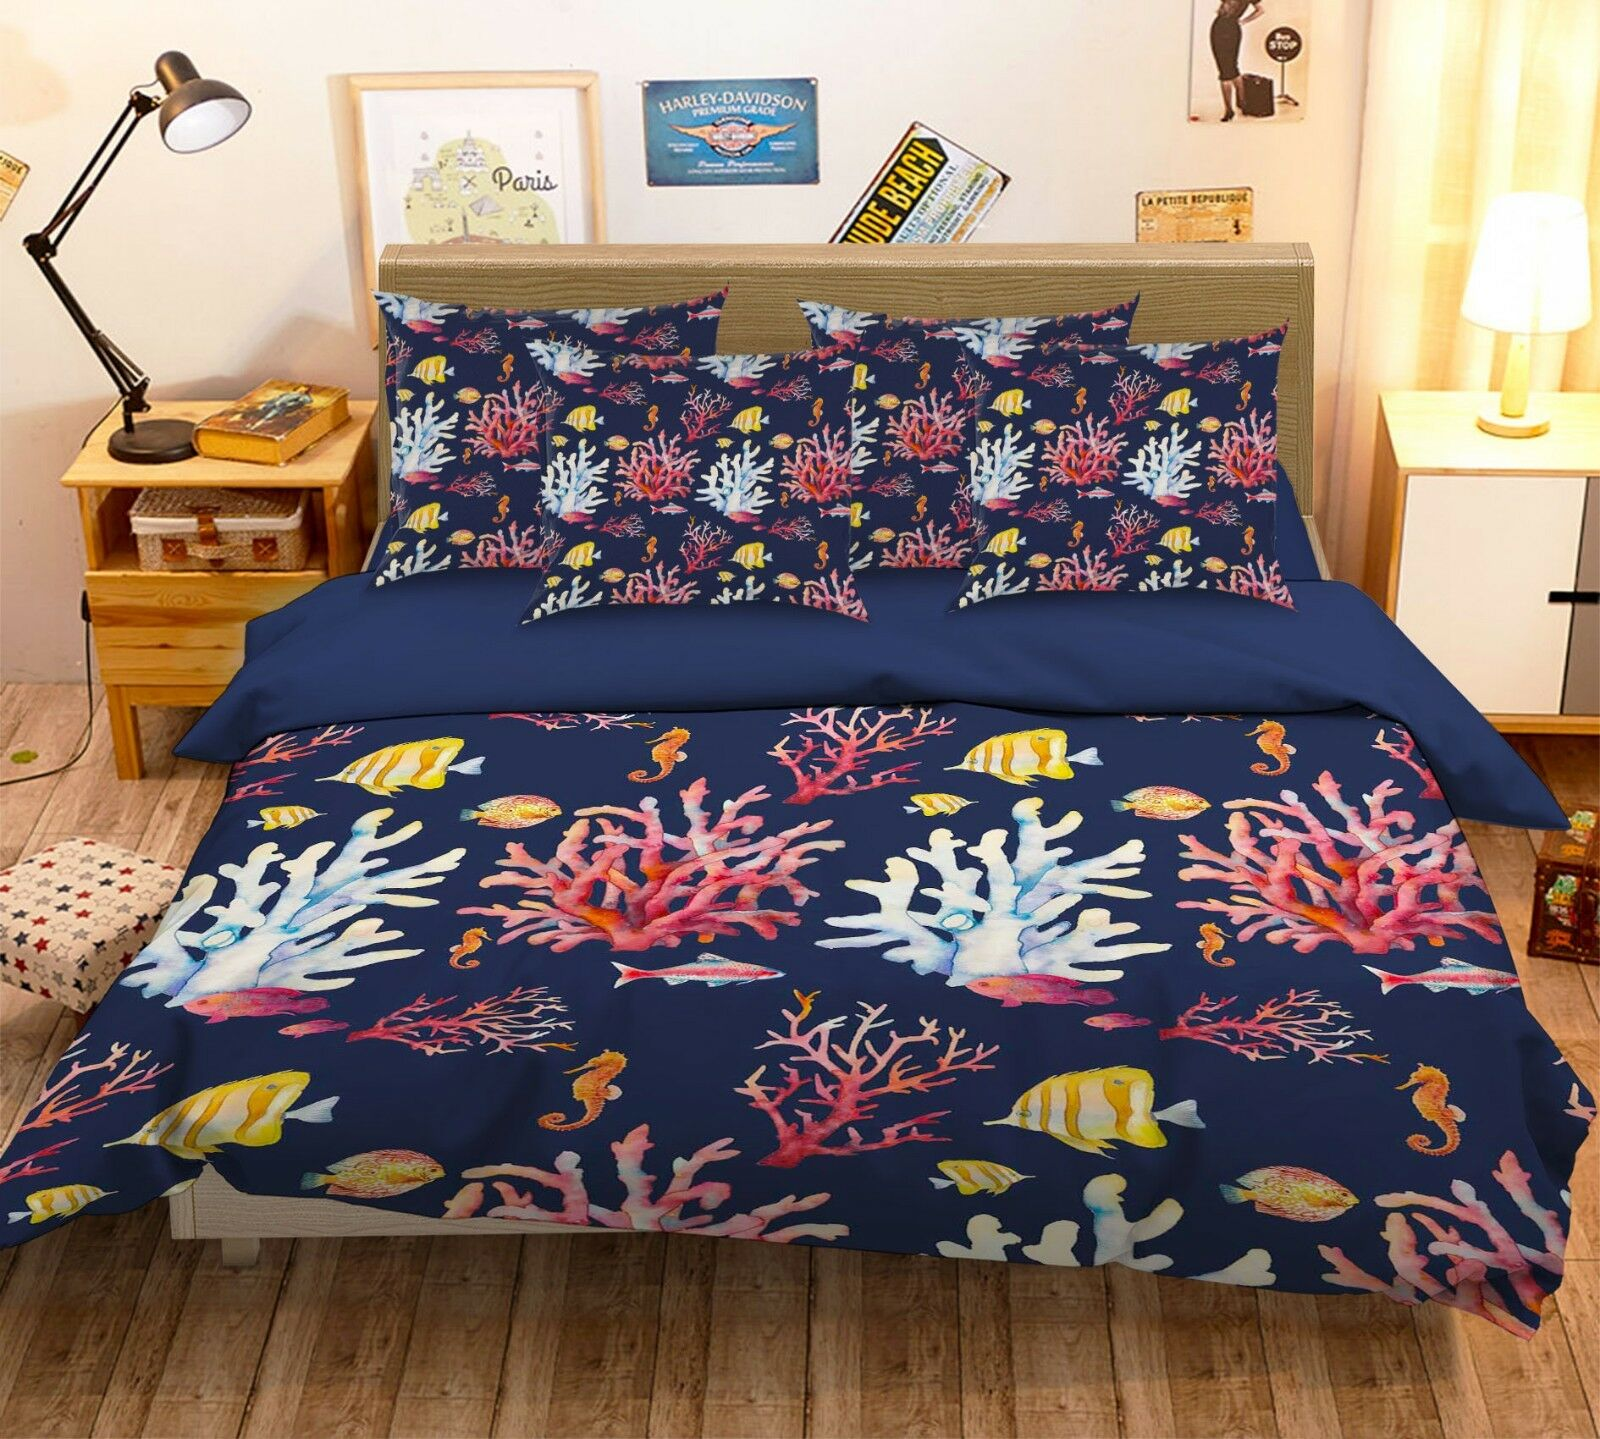 3D CKunstoon Seaweed 69 Bett Pillowcases Quilt Duvet Startseite Set Single König UK Lemon